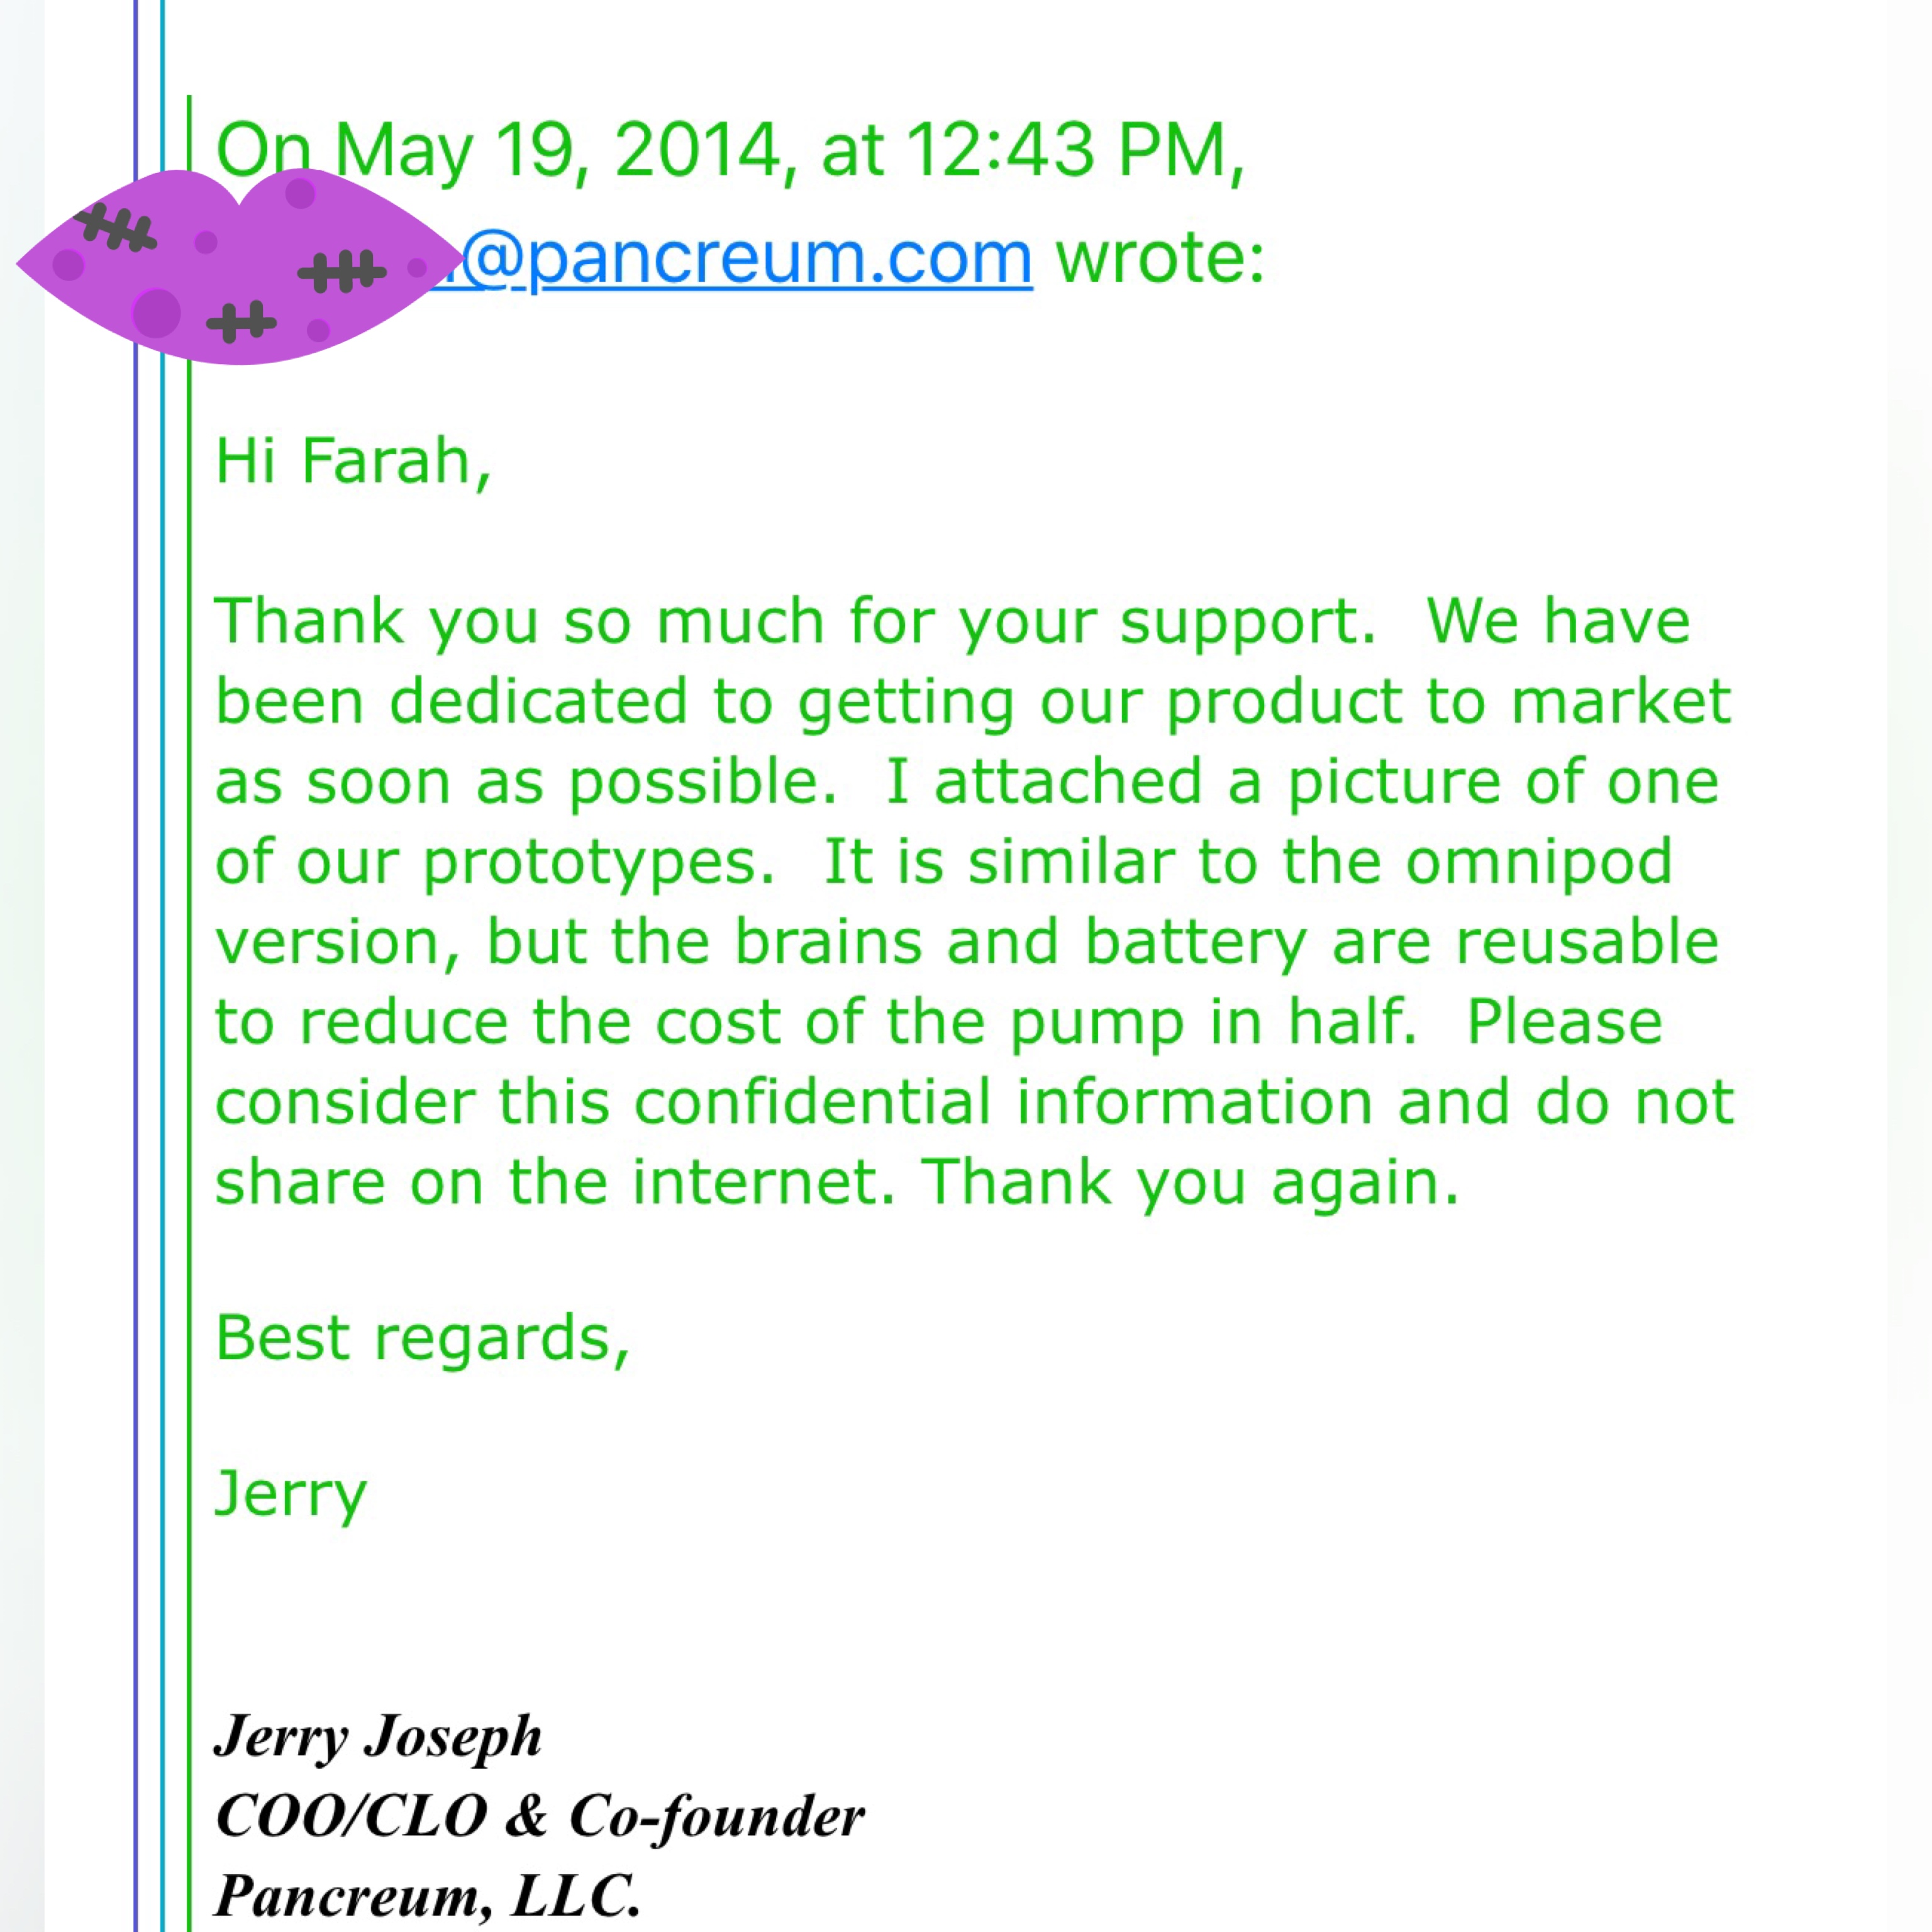 Exclusive original email from 2014 from engineer and Pancreum Co-Founder/CEO Jerry Joseph introducing the artificial pancreas prototype to me personally years before being presented to the public! GREATNESS TAKES TIME! THANK YOU FOR ALLOWING ME TO BE PART OF YOUR DREAM JERRY! Please note: Identifying features such as full names and email addresses have been partially covered for privacy reasons.